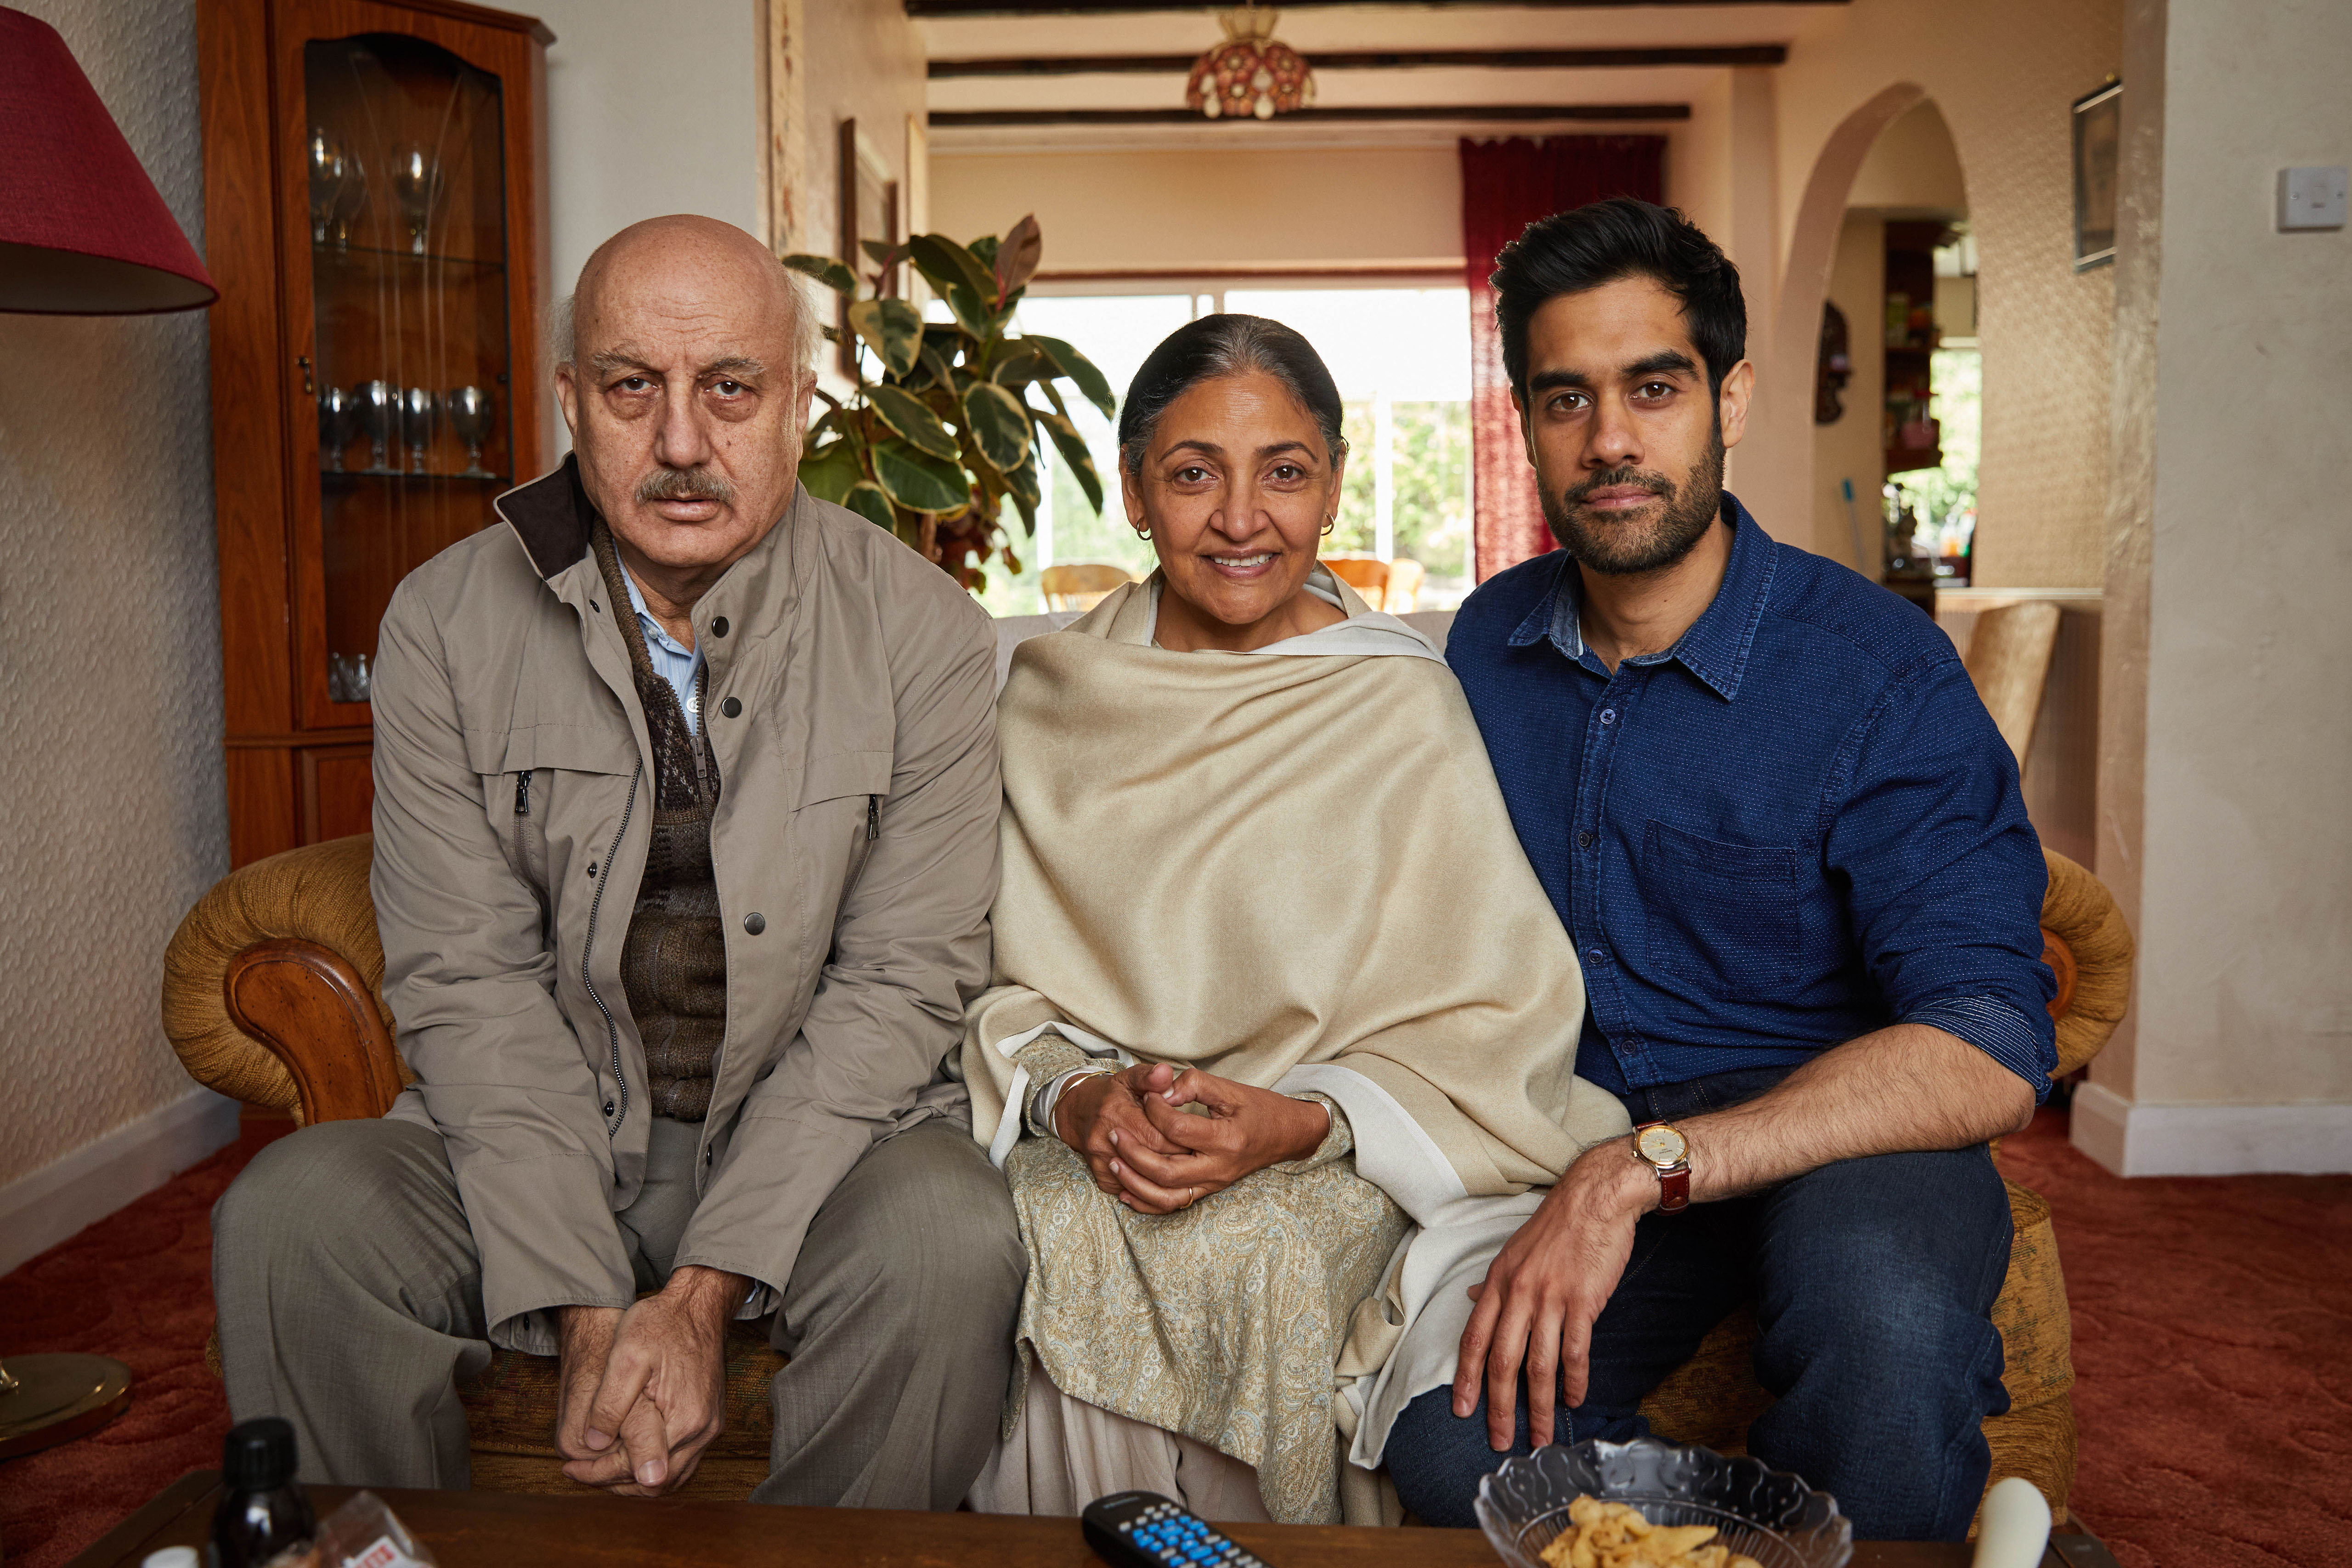 Sacha Dhawan appears in the adaptation alongside veteran actors Deepti Naval and Anupam Kher, who play the lead character's parents